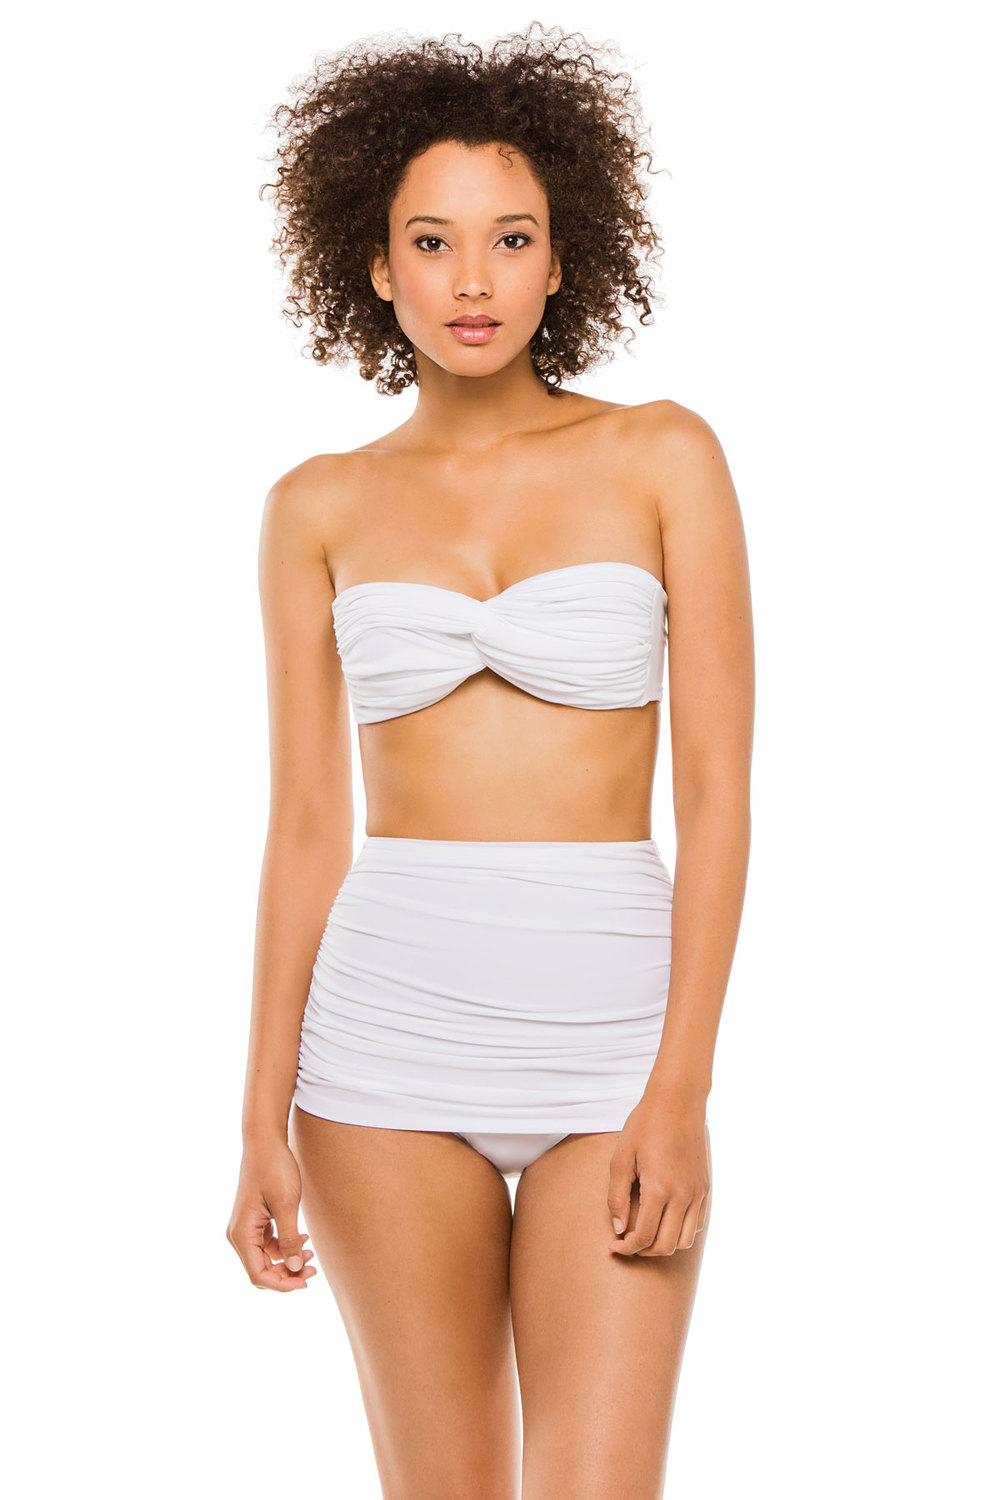 Norma Kamali's Bandeau Top and Bottoms. Available in white, black. Sold Separately. Everything but Water. $175 Nd $185.